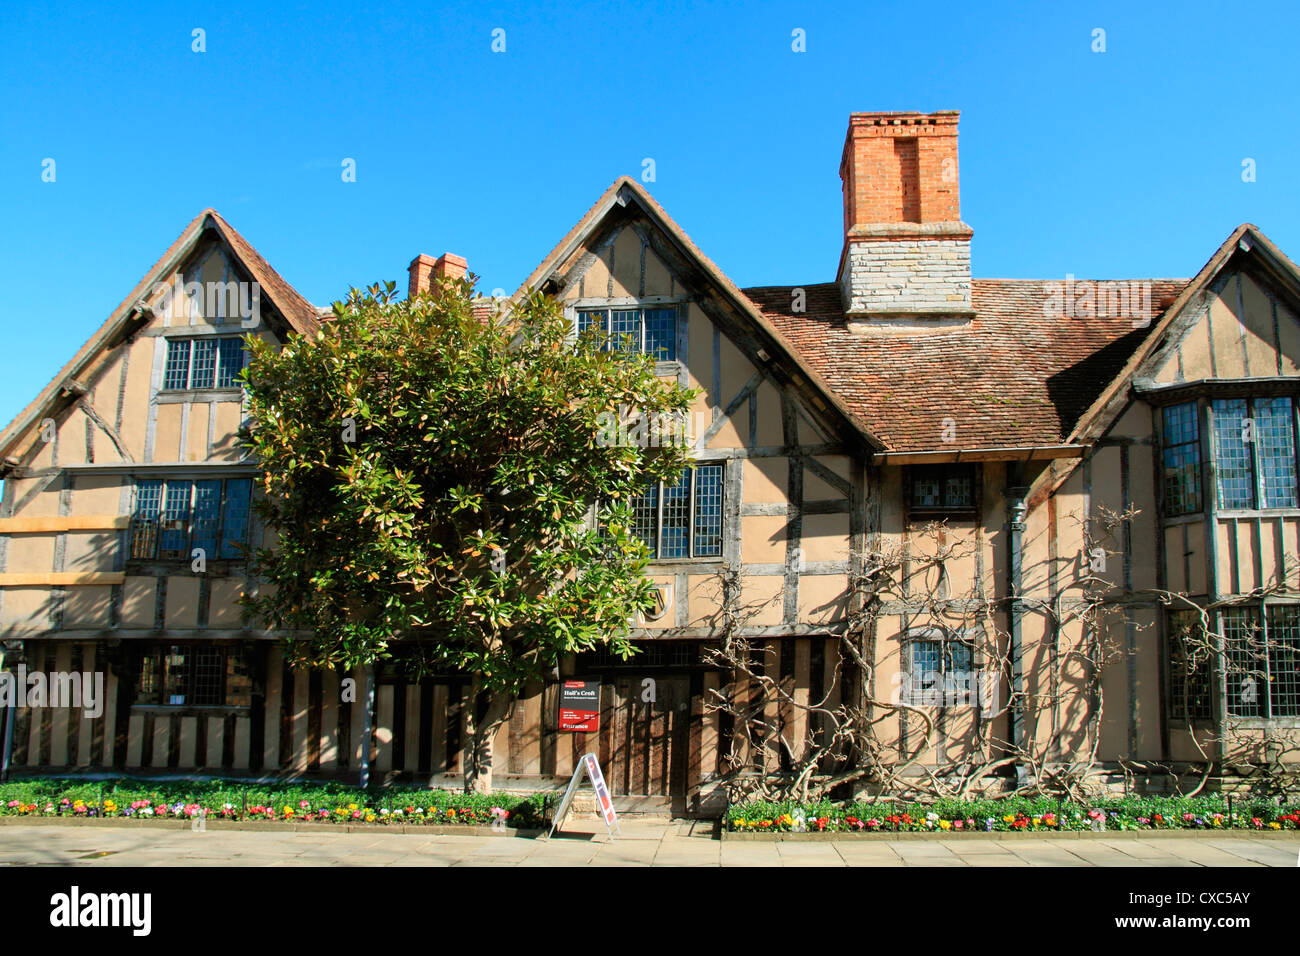 Hall's Croft, Stratford-upon-Avon, Warwickshire, England, United Kingdom, Europe - Stock Image